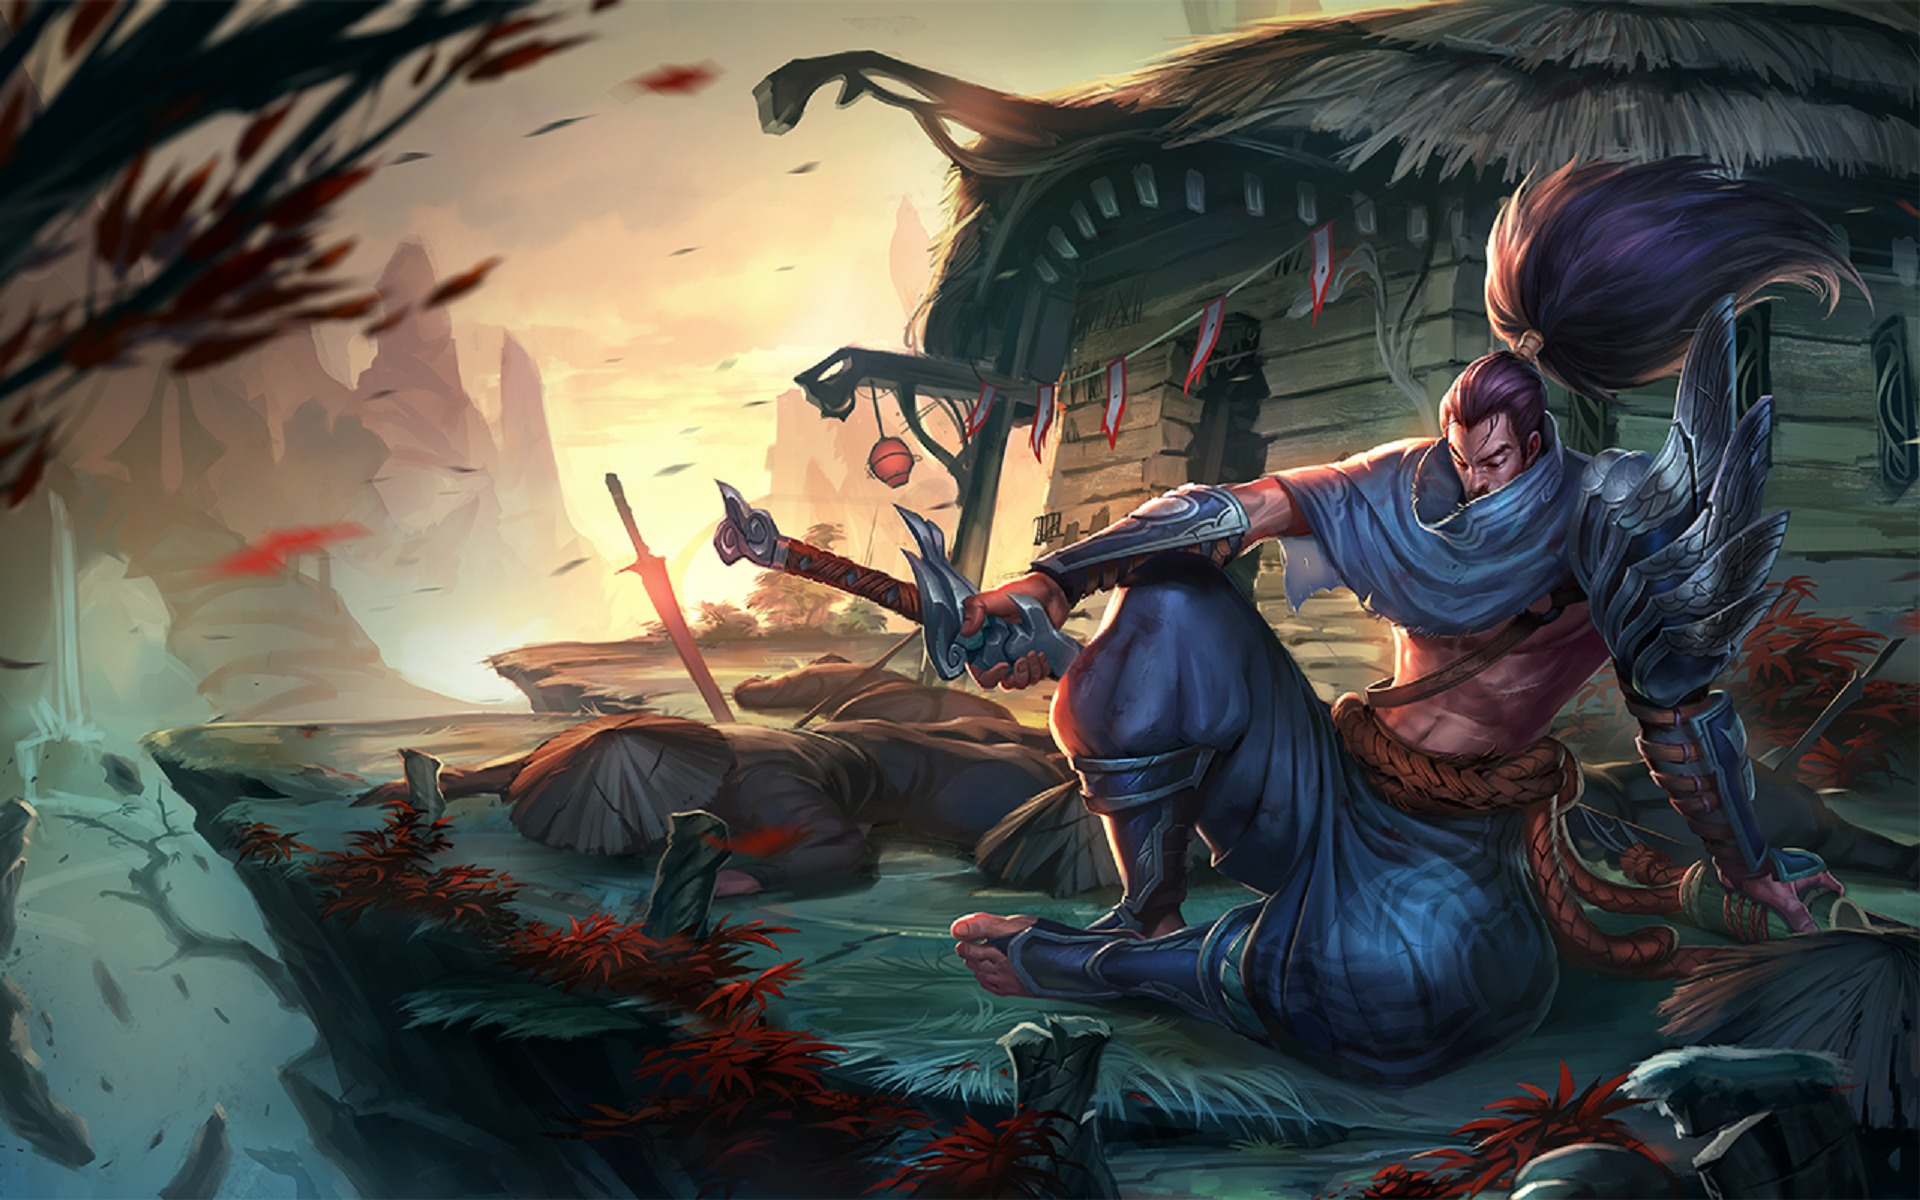 master yi vs yasuo - photo #21